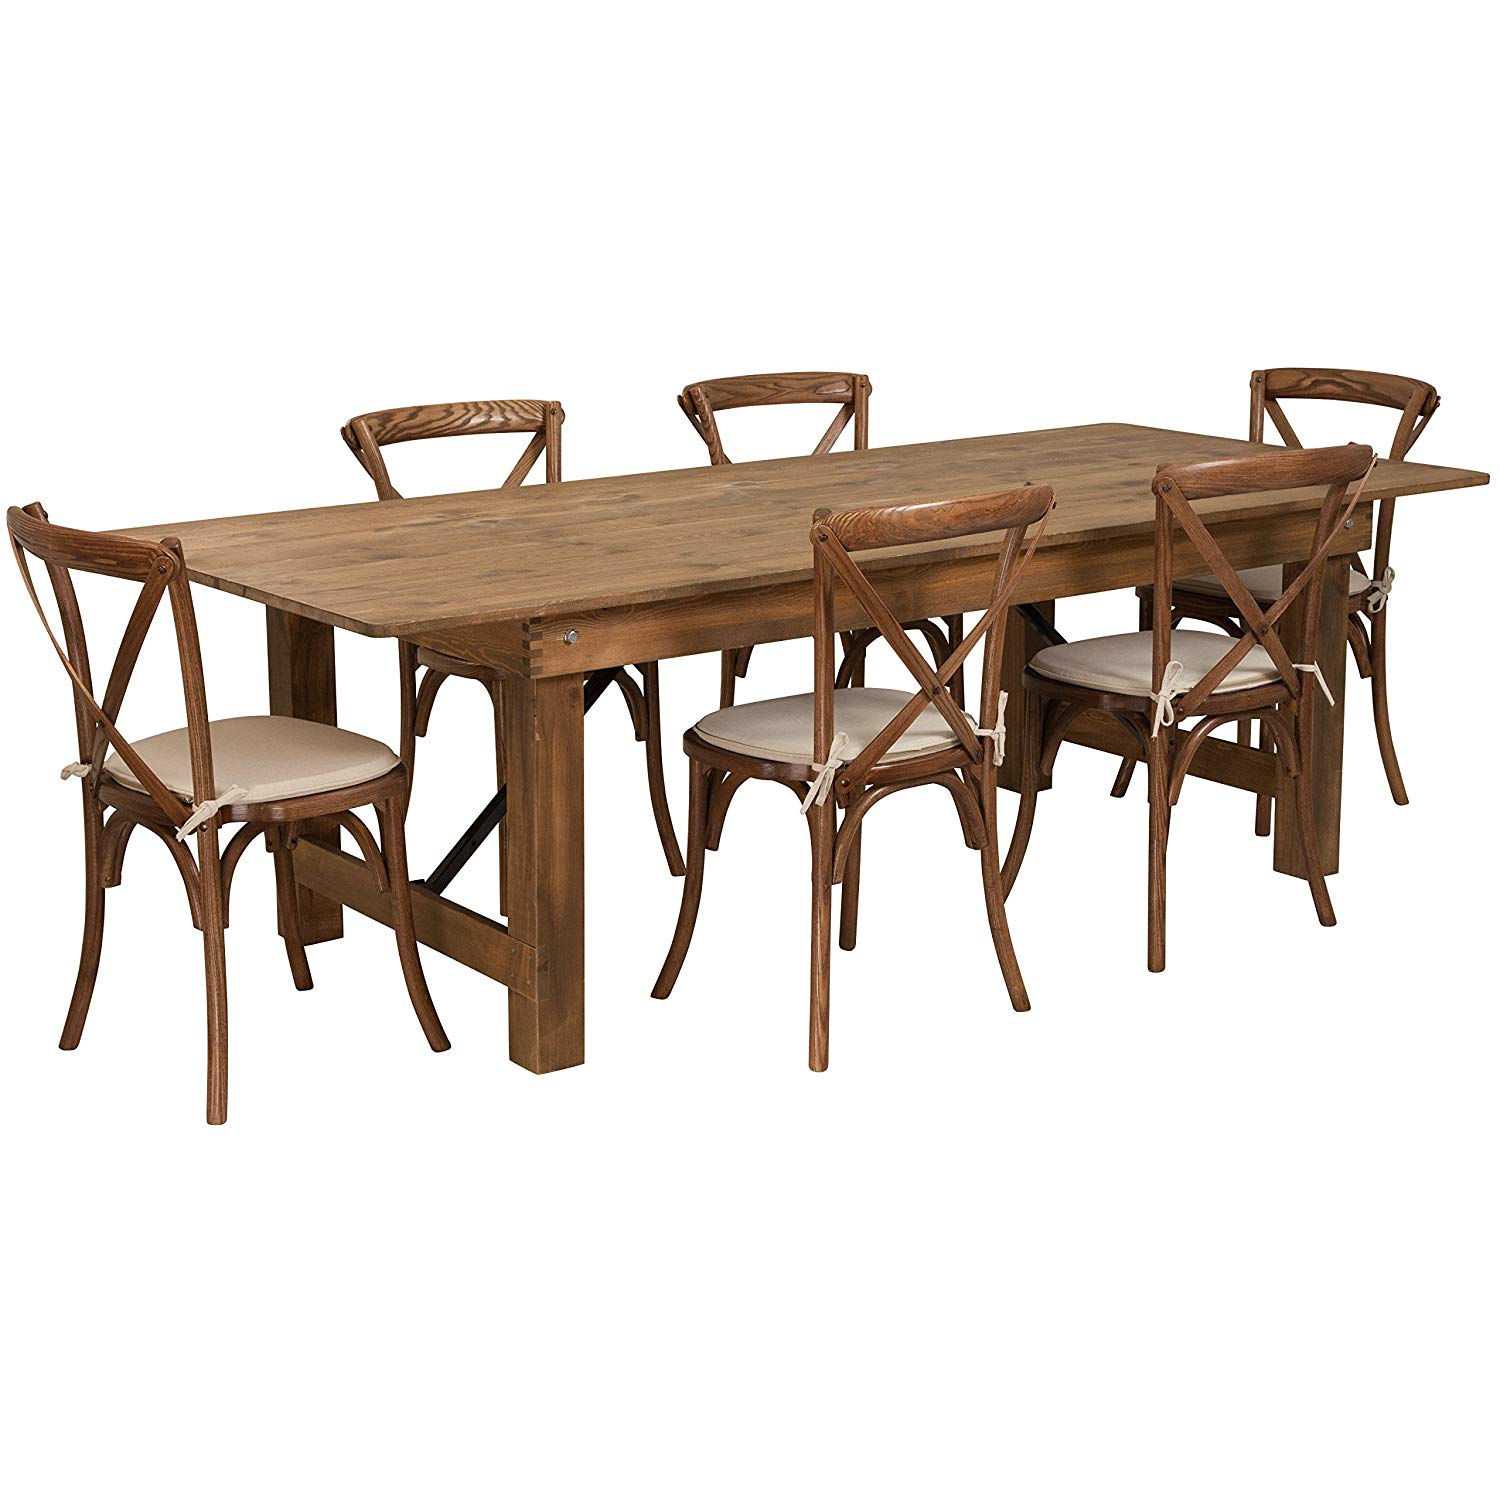 Farm Chairs Rustic Farm Table With 6 Cross Back Chairs And Burlap